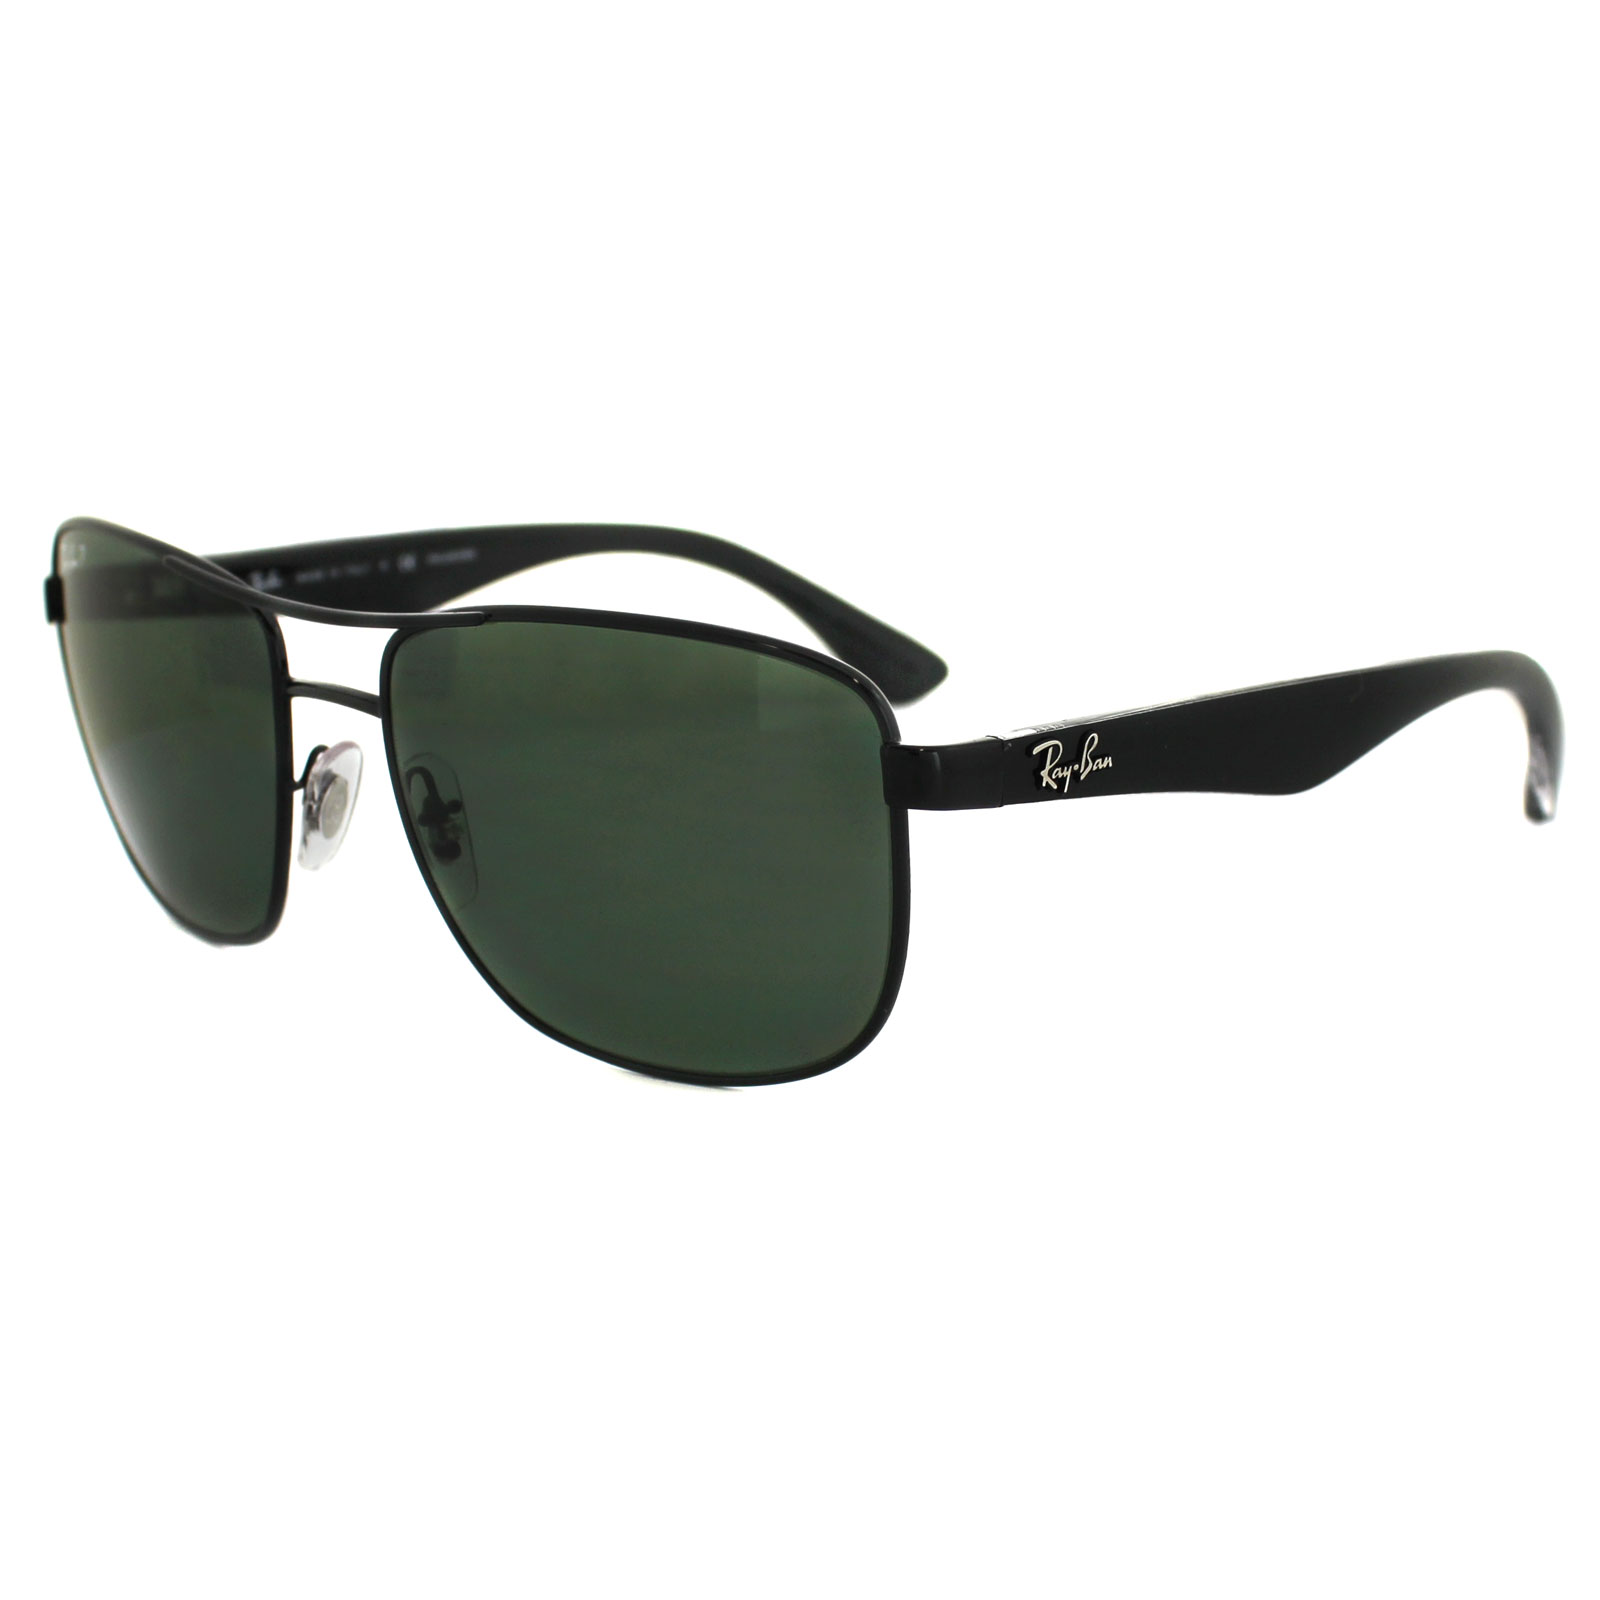 741545b7c4 Sentinel Ray-Ban Sunglasses 3533 002 9A Black   Transparent Green Polarized